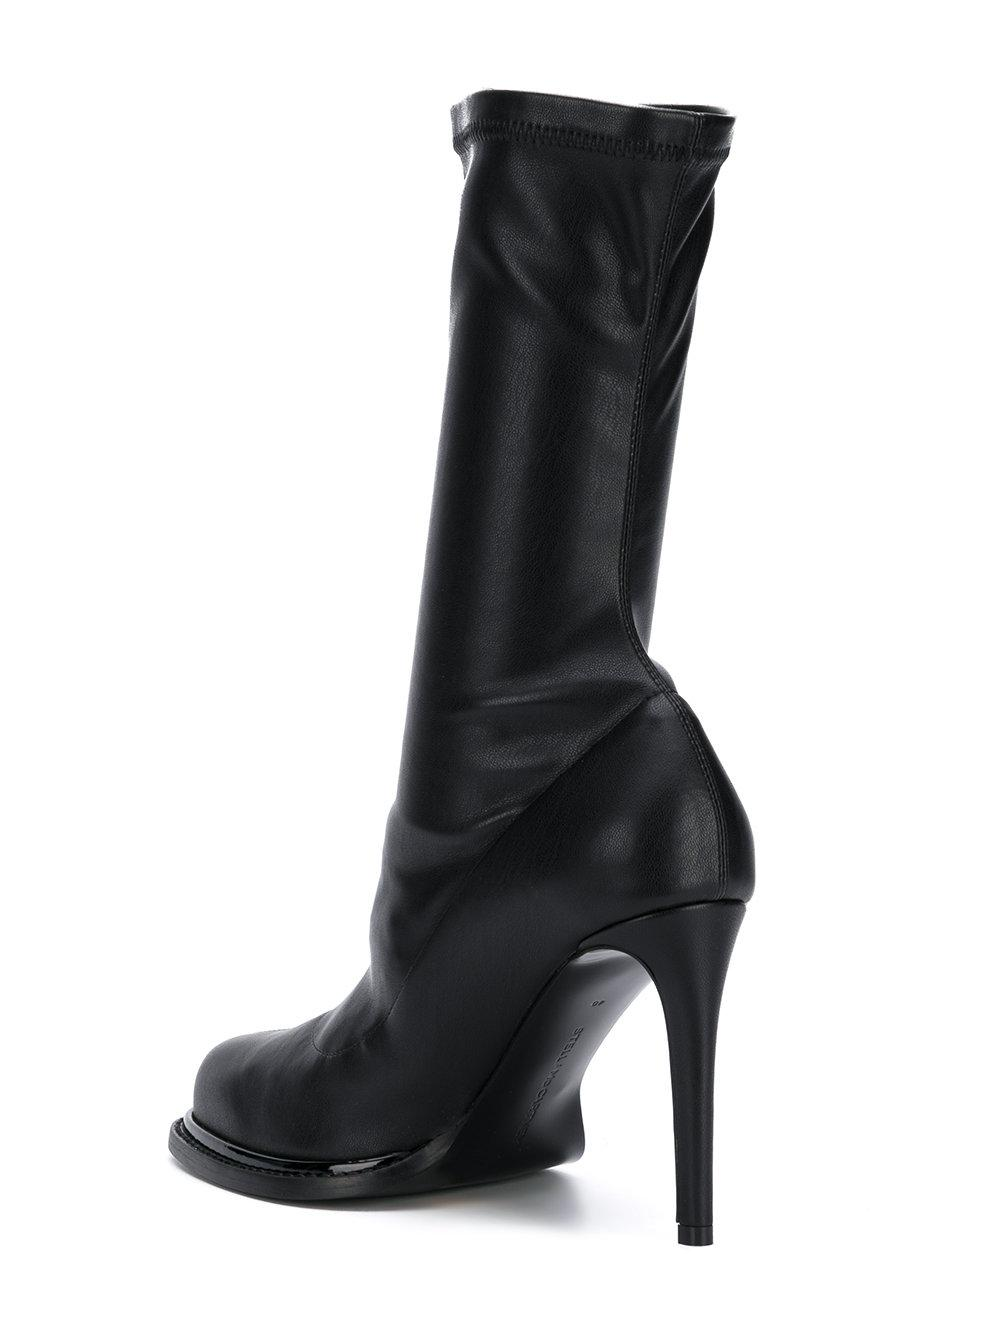 Palmer ankle boots - Black Stella McCartney